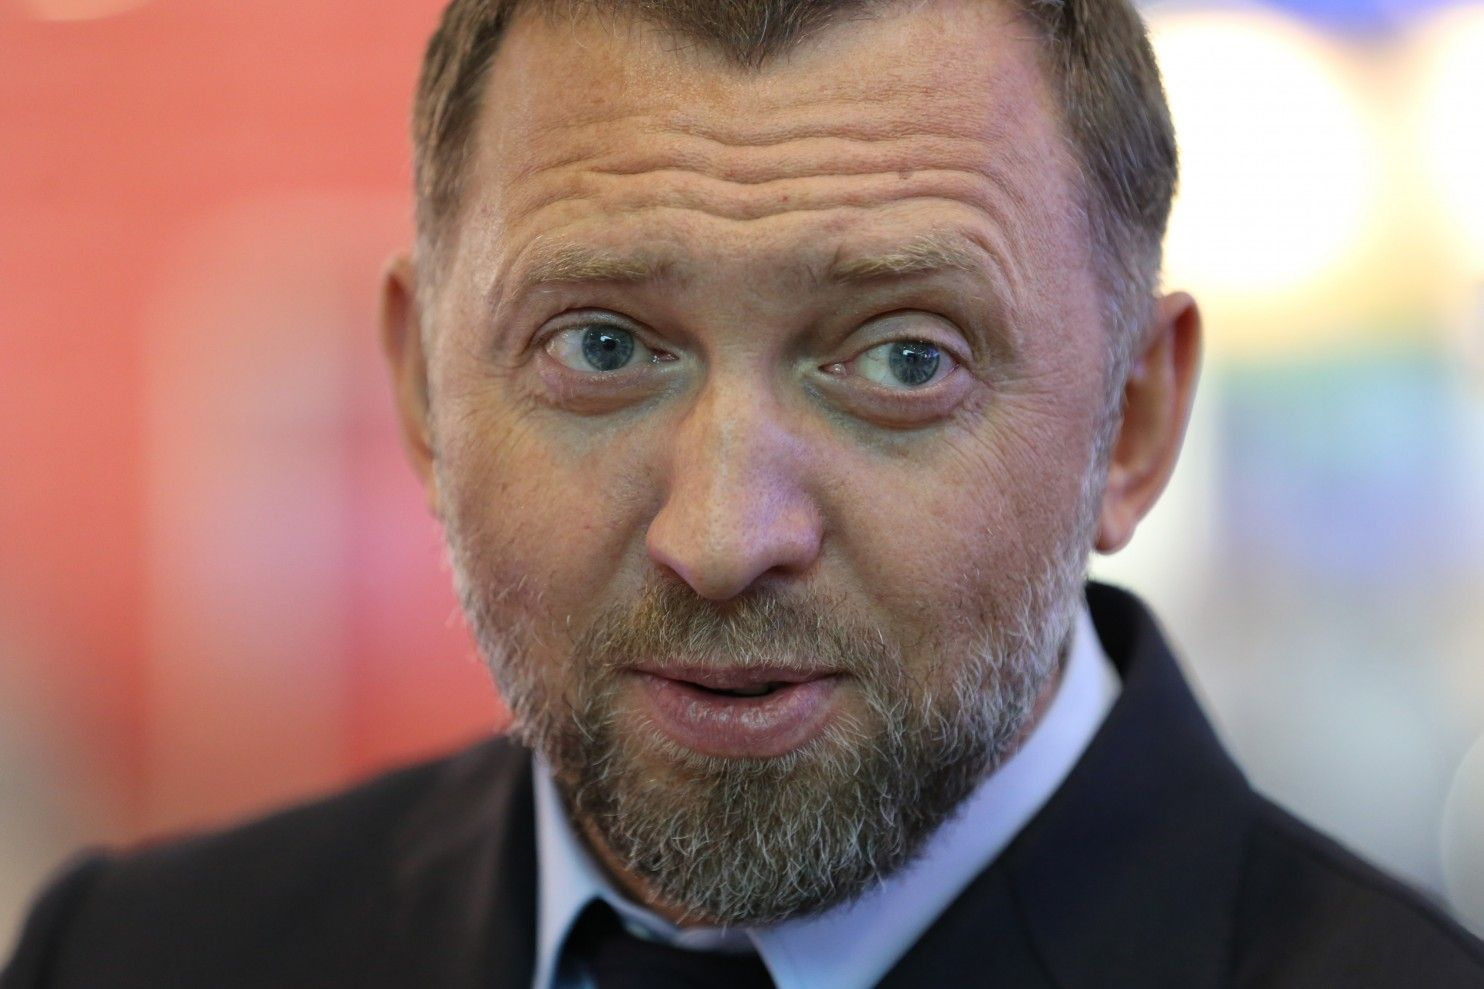 Trump Russia election corruption at https://www.washingtonpost.com/news/worldviews/wp/2017/09/24/manaforts-russia-connection-what-you-need-to-know-about-oleg-deripaska/